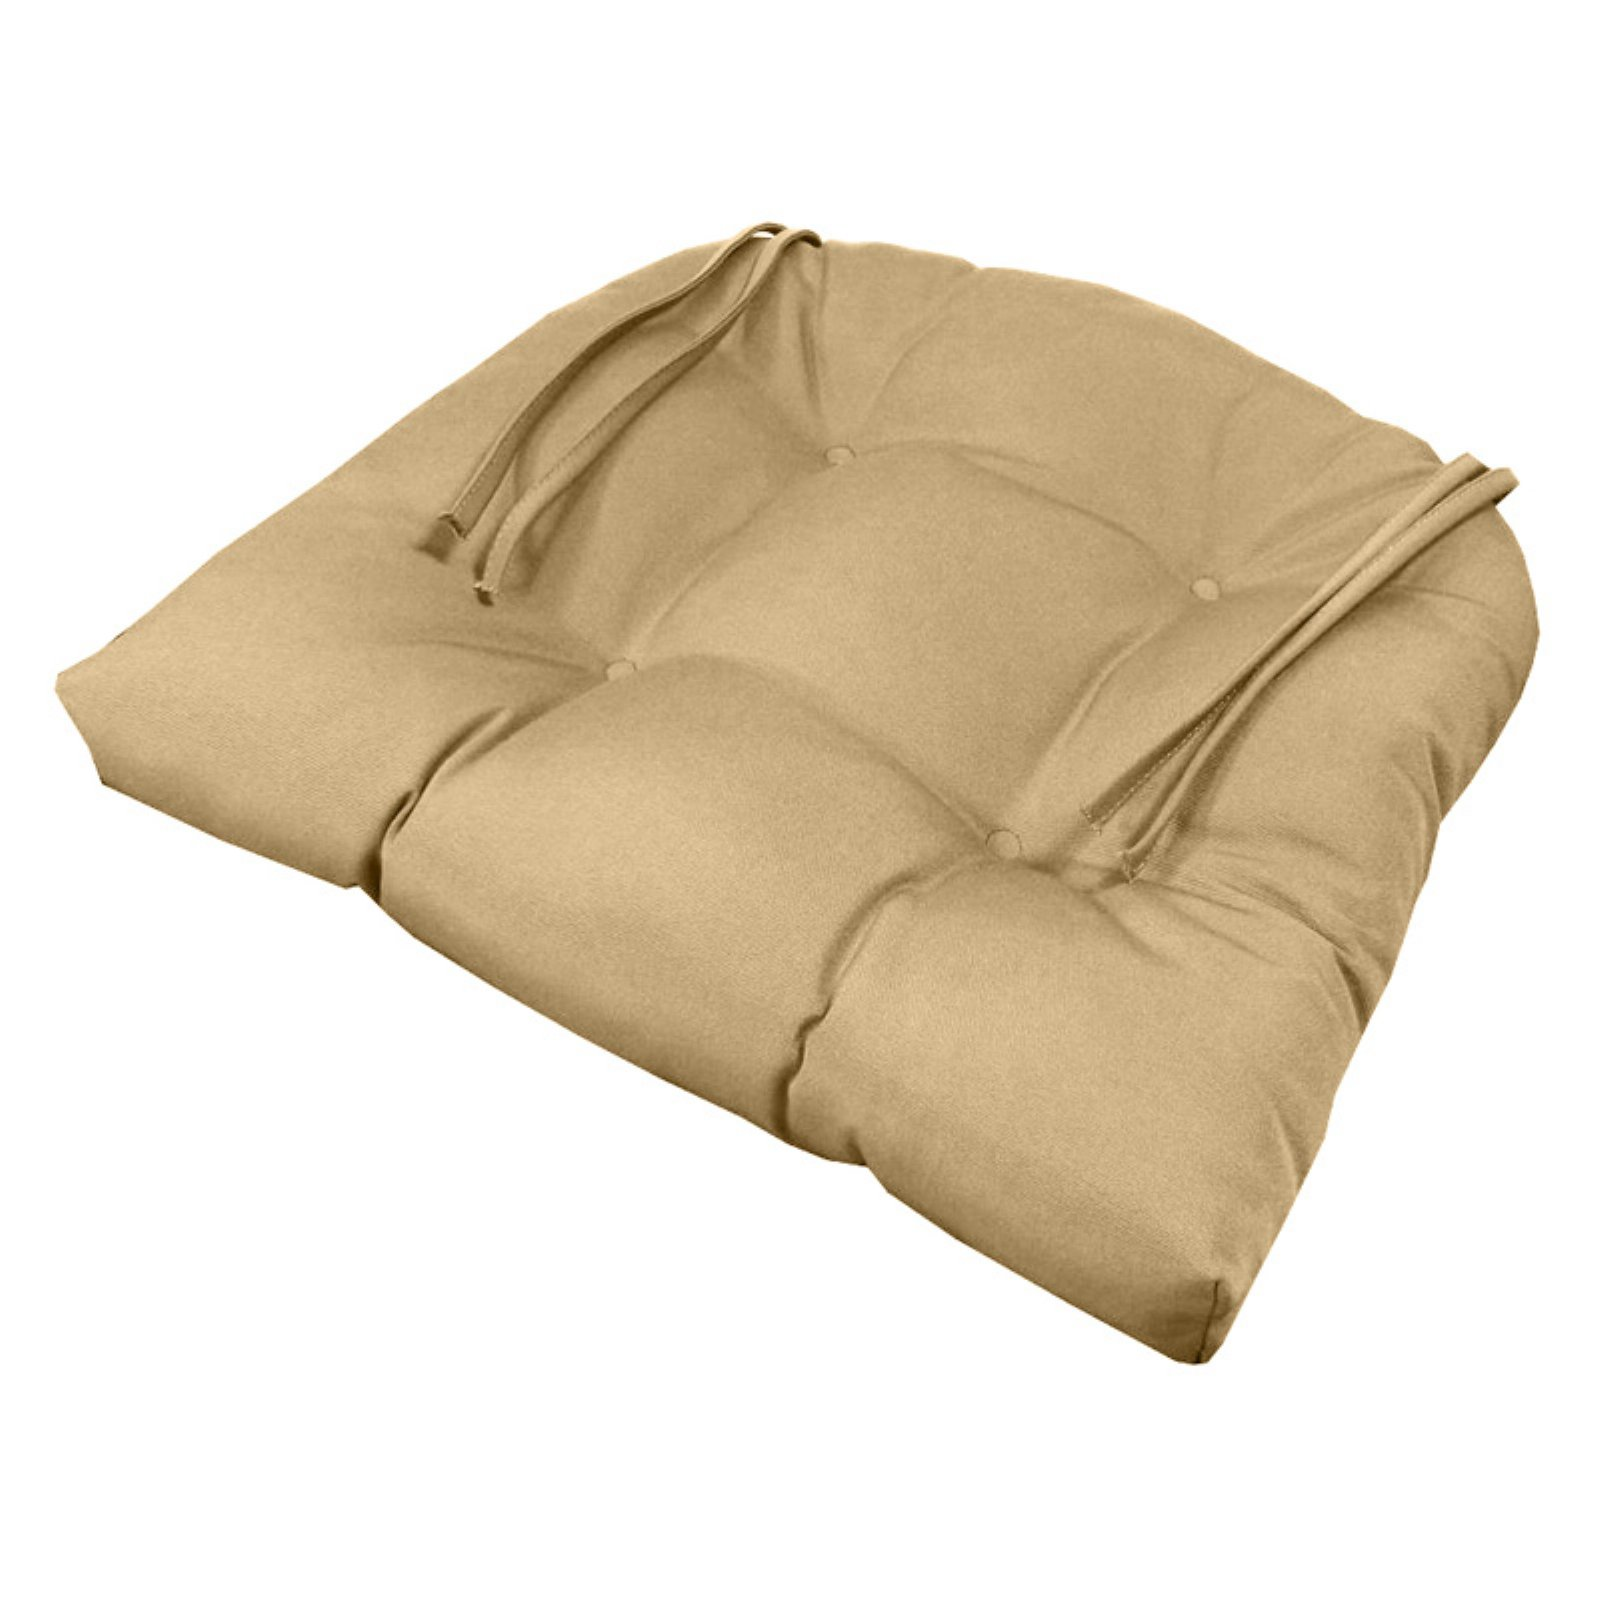 wicker chair cushions with ties metal chairs and table cushion pros sunbrella tufted